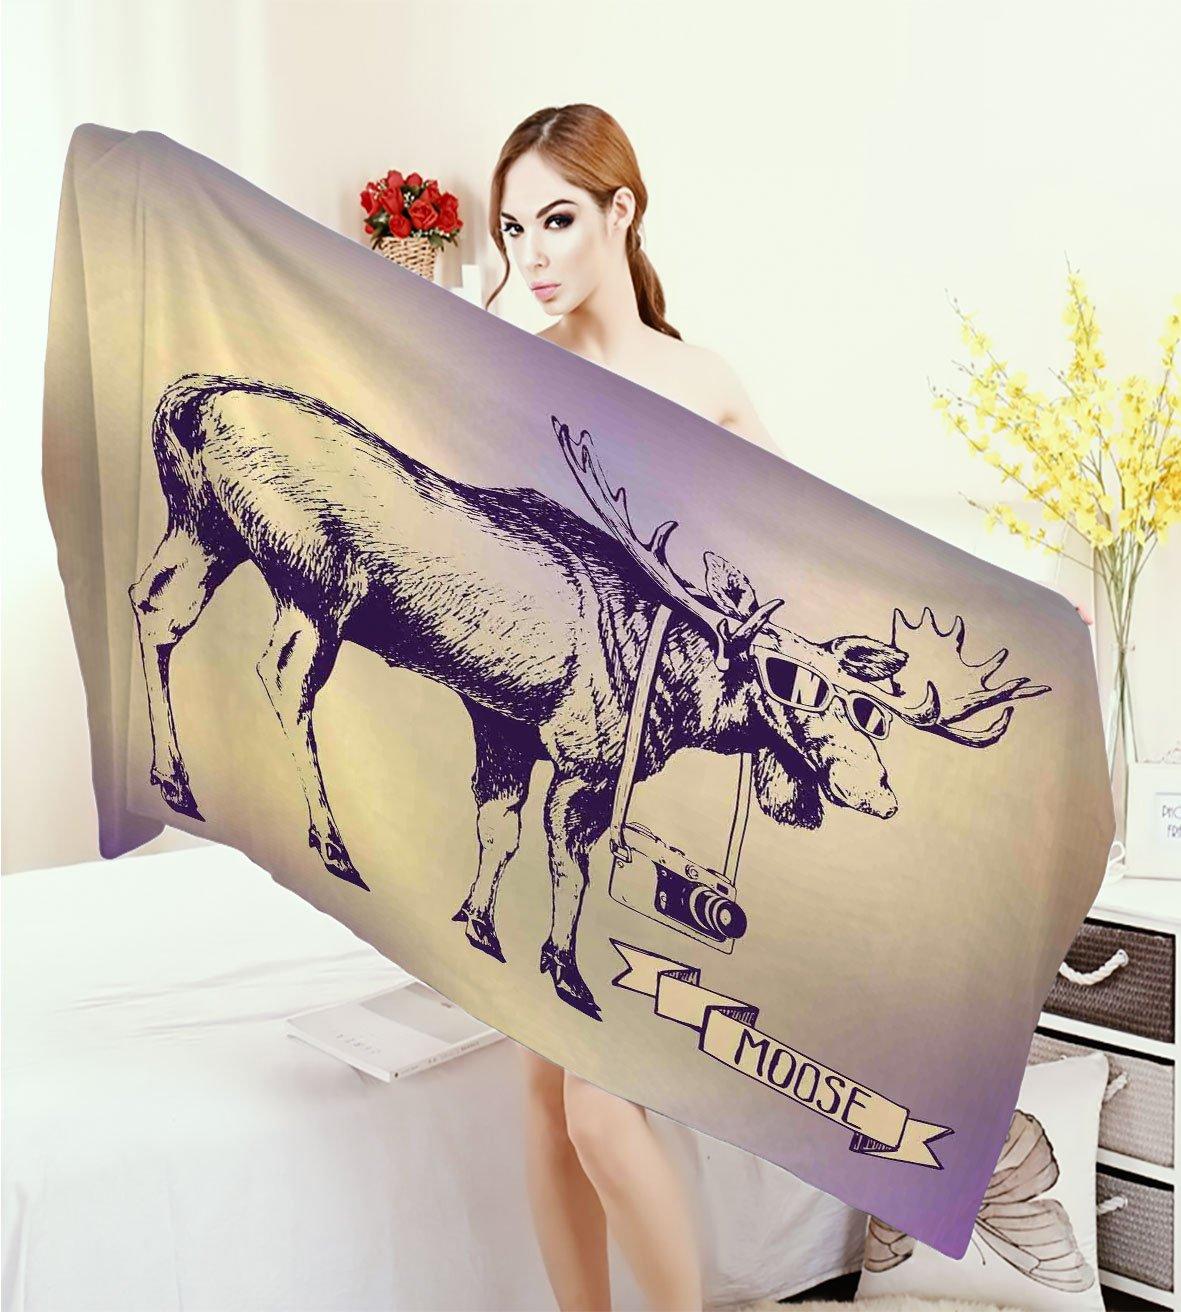 homecoco Moose Print fancy towels Hipster Deer with Shade Sunglasses and Camera Vintage Ombre Design Funny Animal Art Customized bath Towels Purple Beige